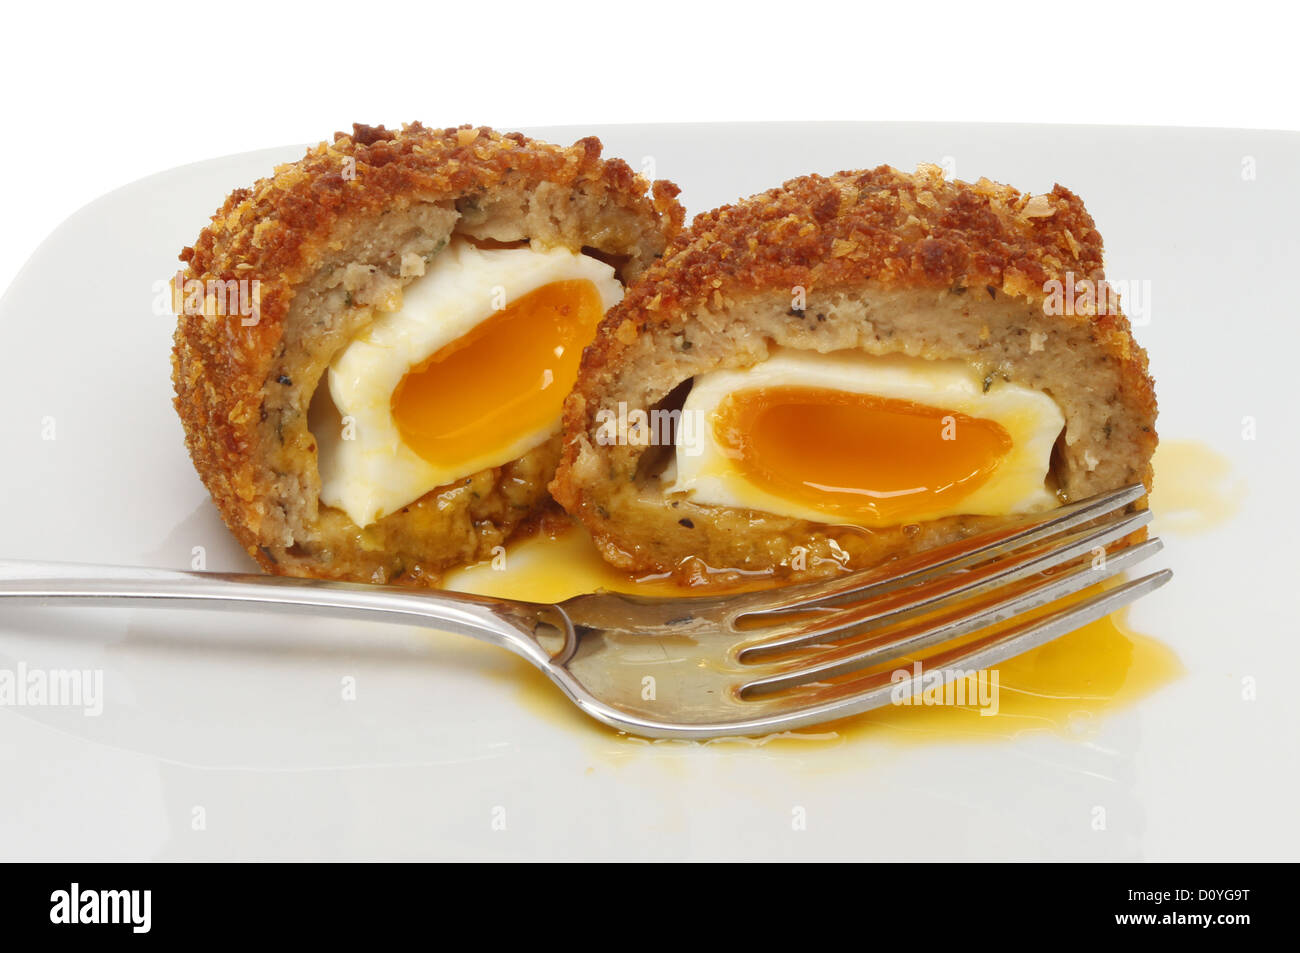 Runny Scotch egg on a plate with a fork - Stock Image